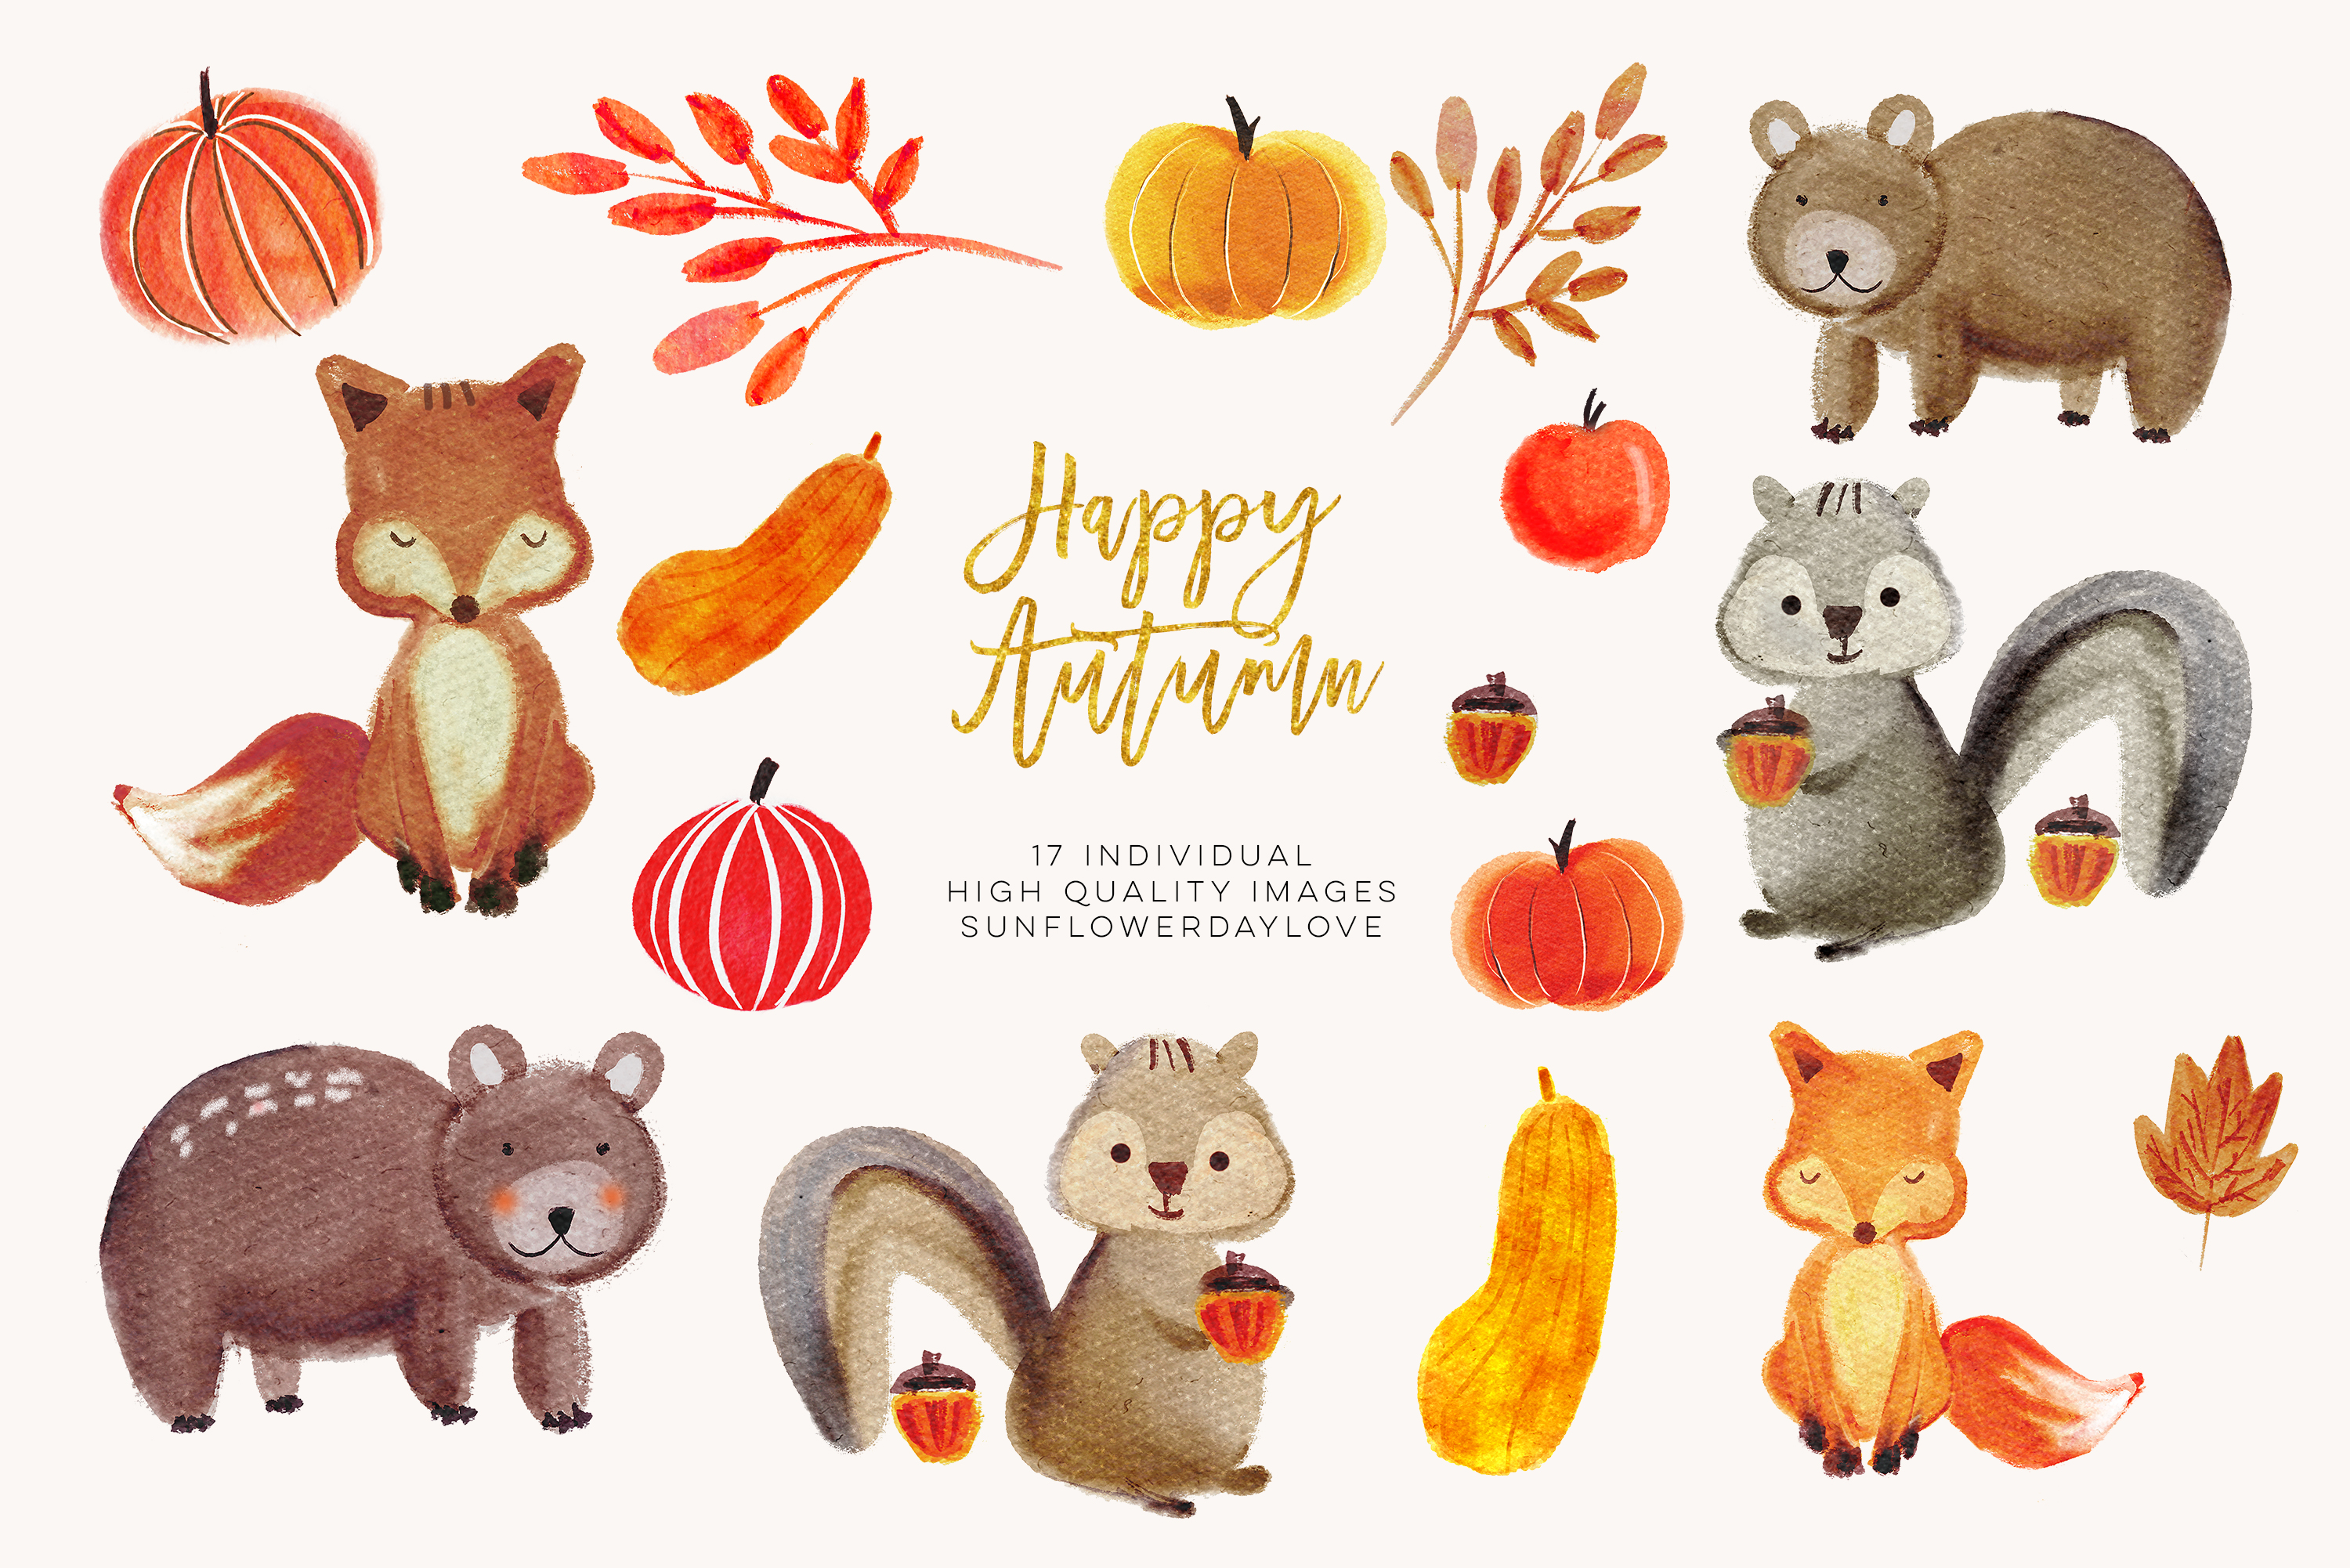 Clipart forest animals graphic library stock Watercolor forest animals clipart, autumn animal clip art, bear clipart,  fox clip art, Fall Animal Clip Art Illustrations, woodland clipart - Vsual graphic library stock